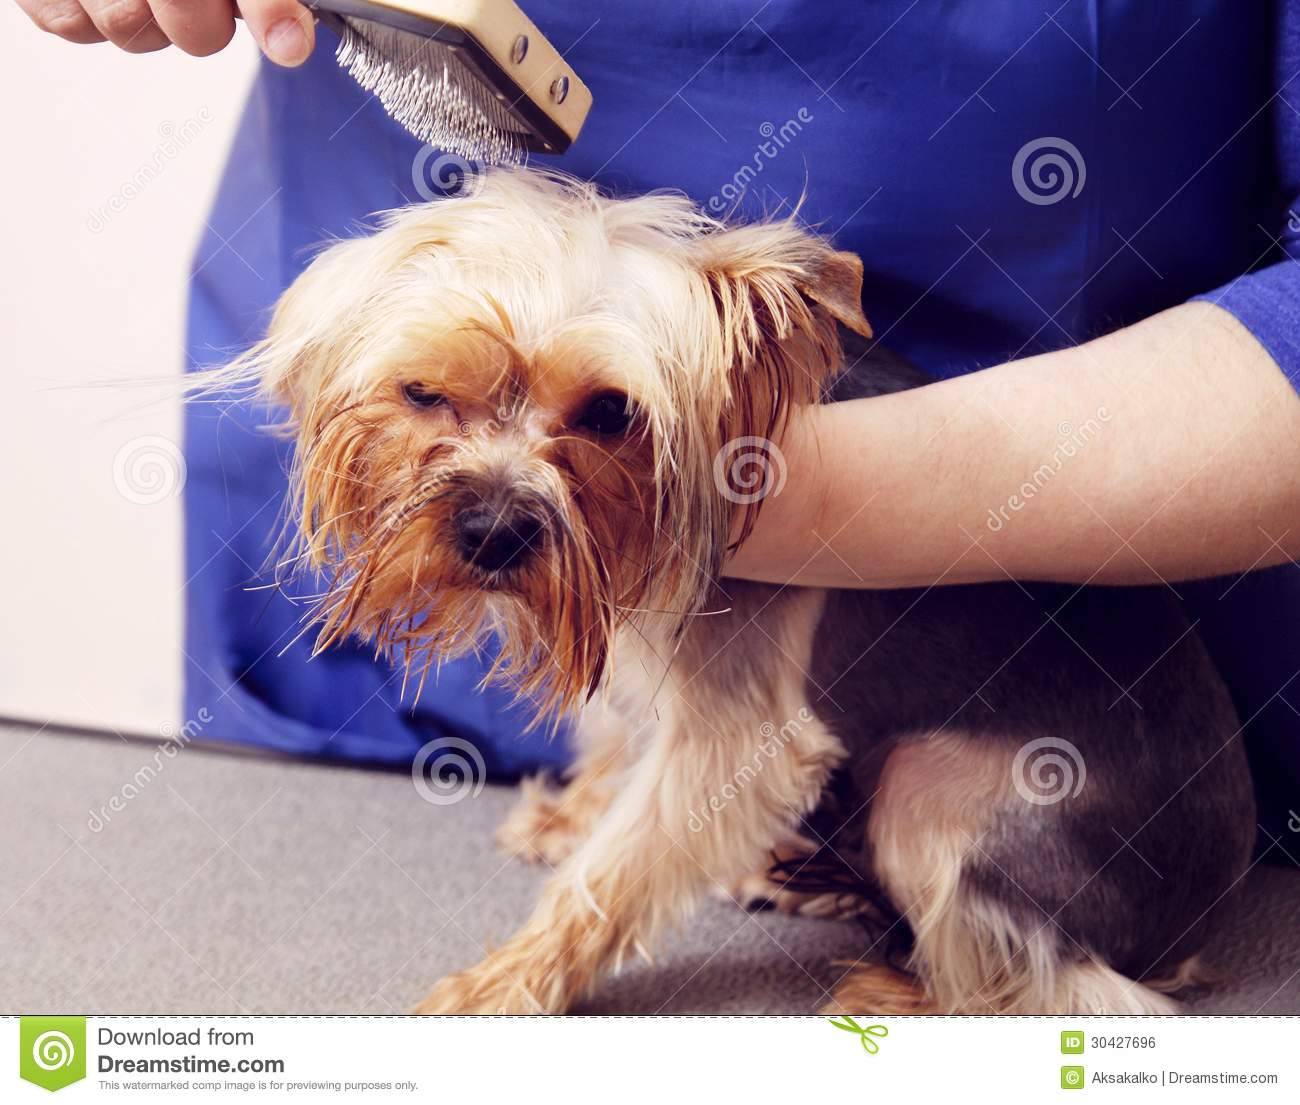 Coiffure Yorkshire Yorkshire Terrier Obtenant Sa Coupe De Cheveux Photo Stock